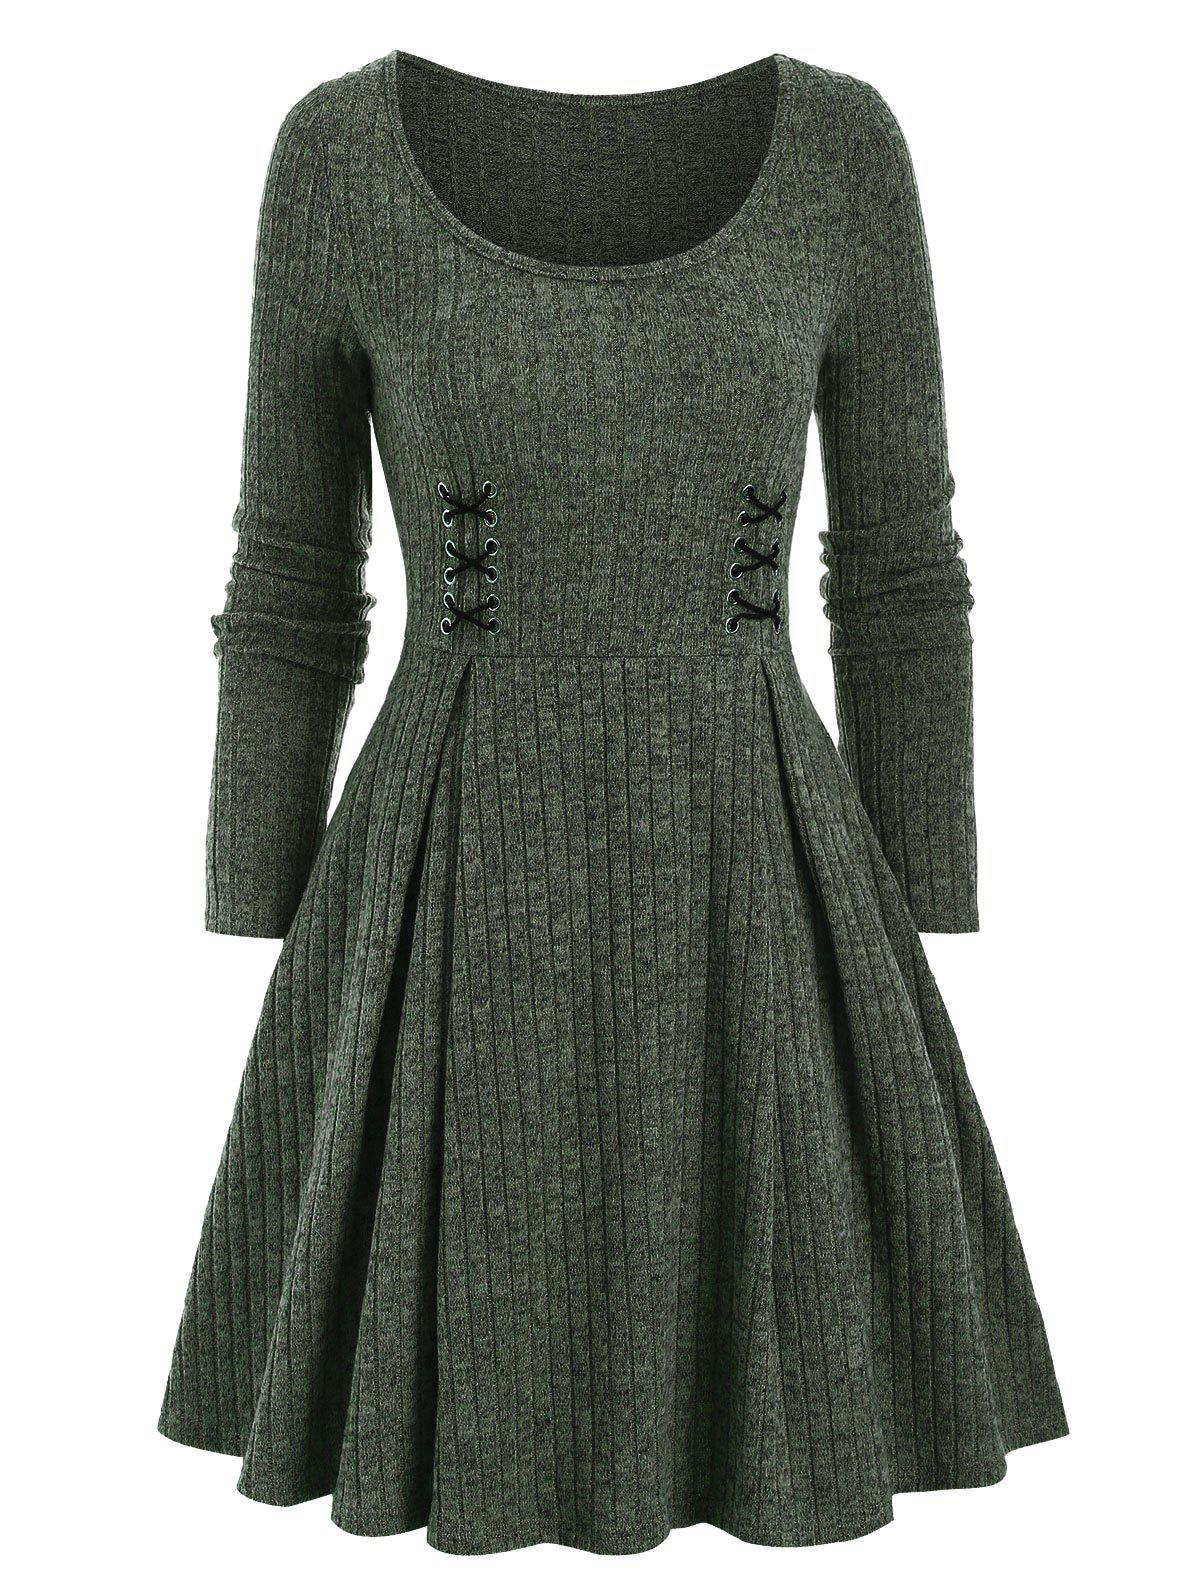 Crisscross Ribbed Mini High Waist Dress - DEEP GREEN 2XL